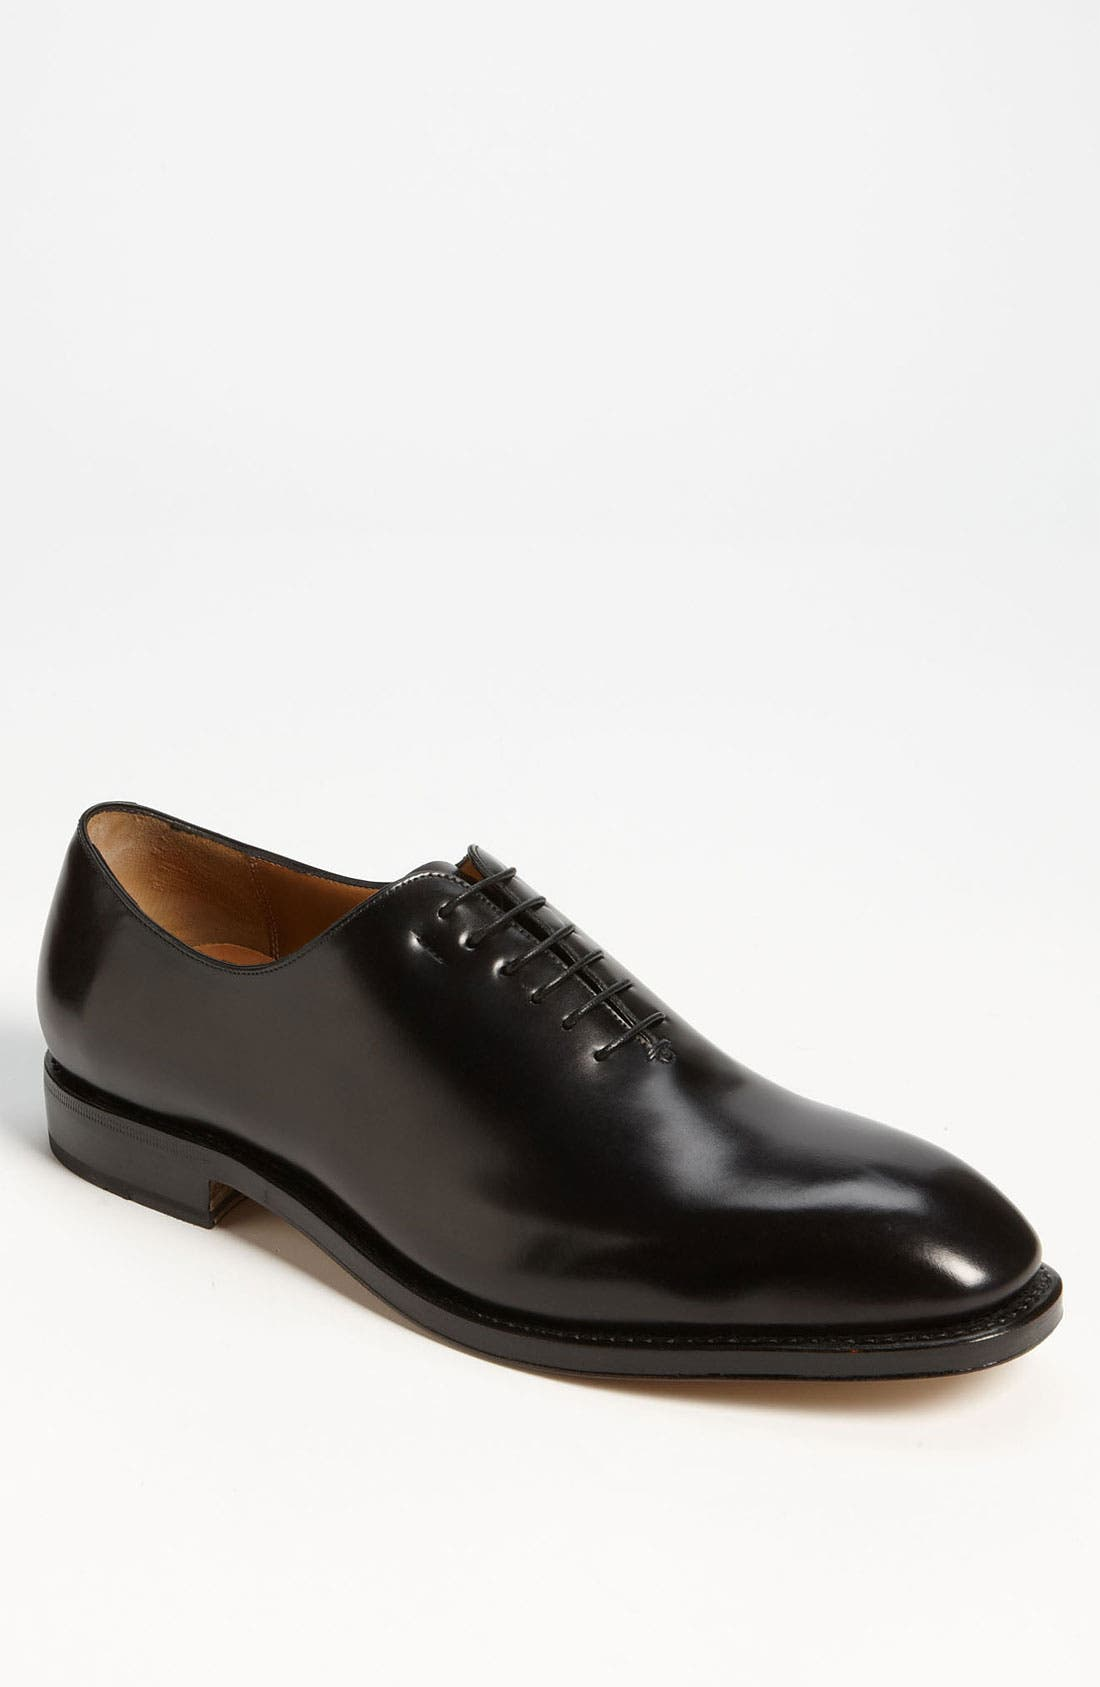 Salvatore Ferragamo 'Carmelo' Plain Toe Oxford